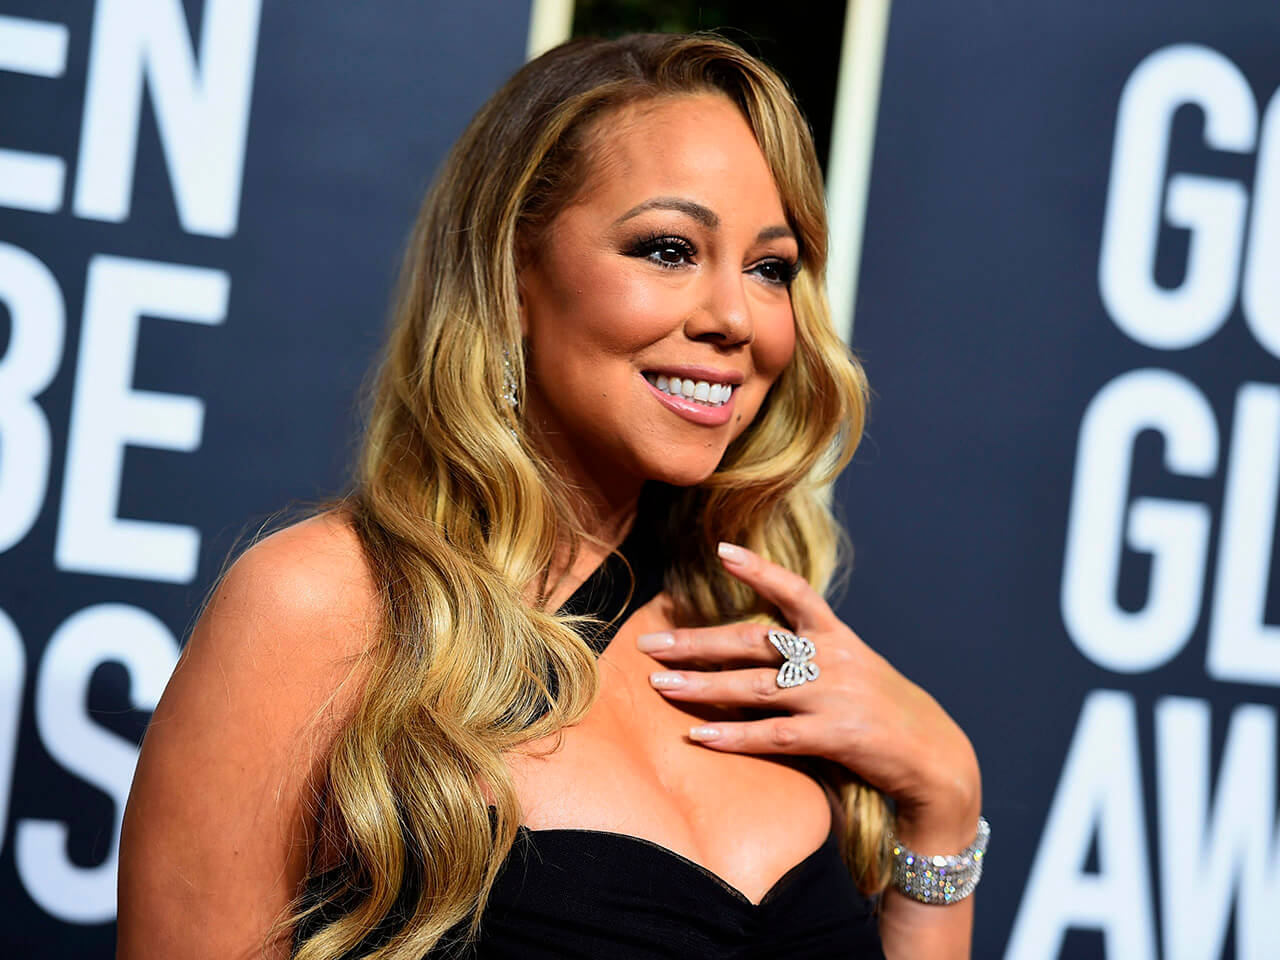 Image of mariah carey at award for for article on celebrities living with chronic illness